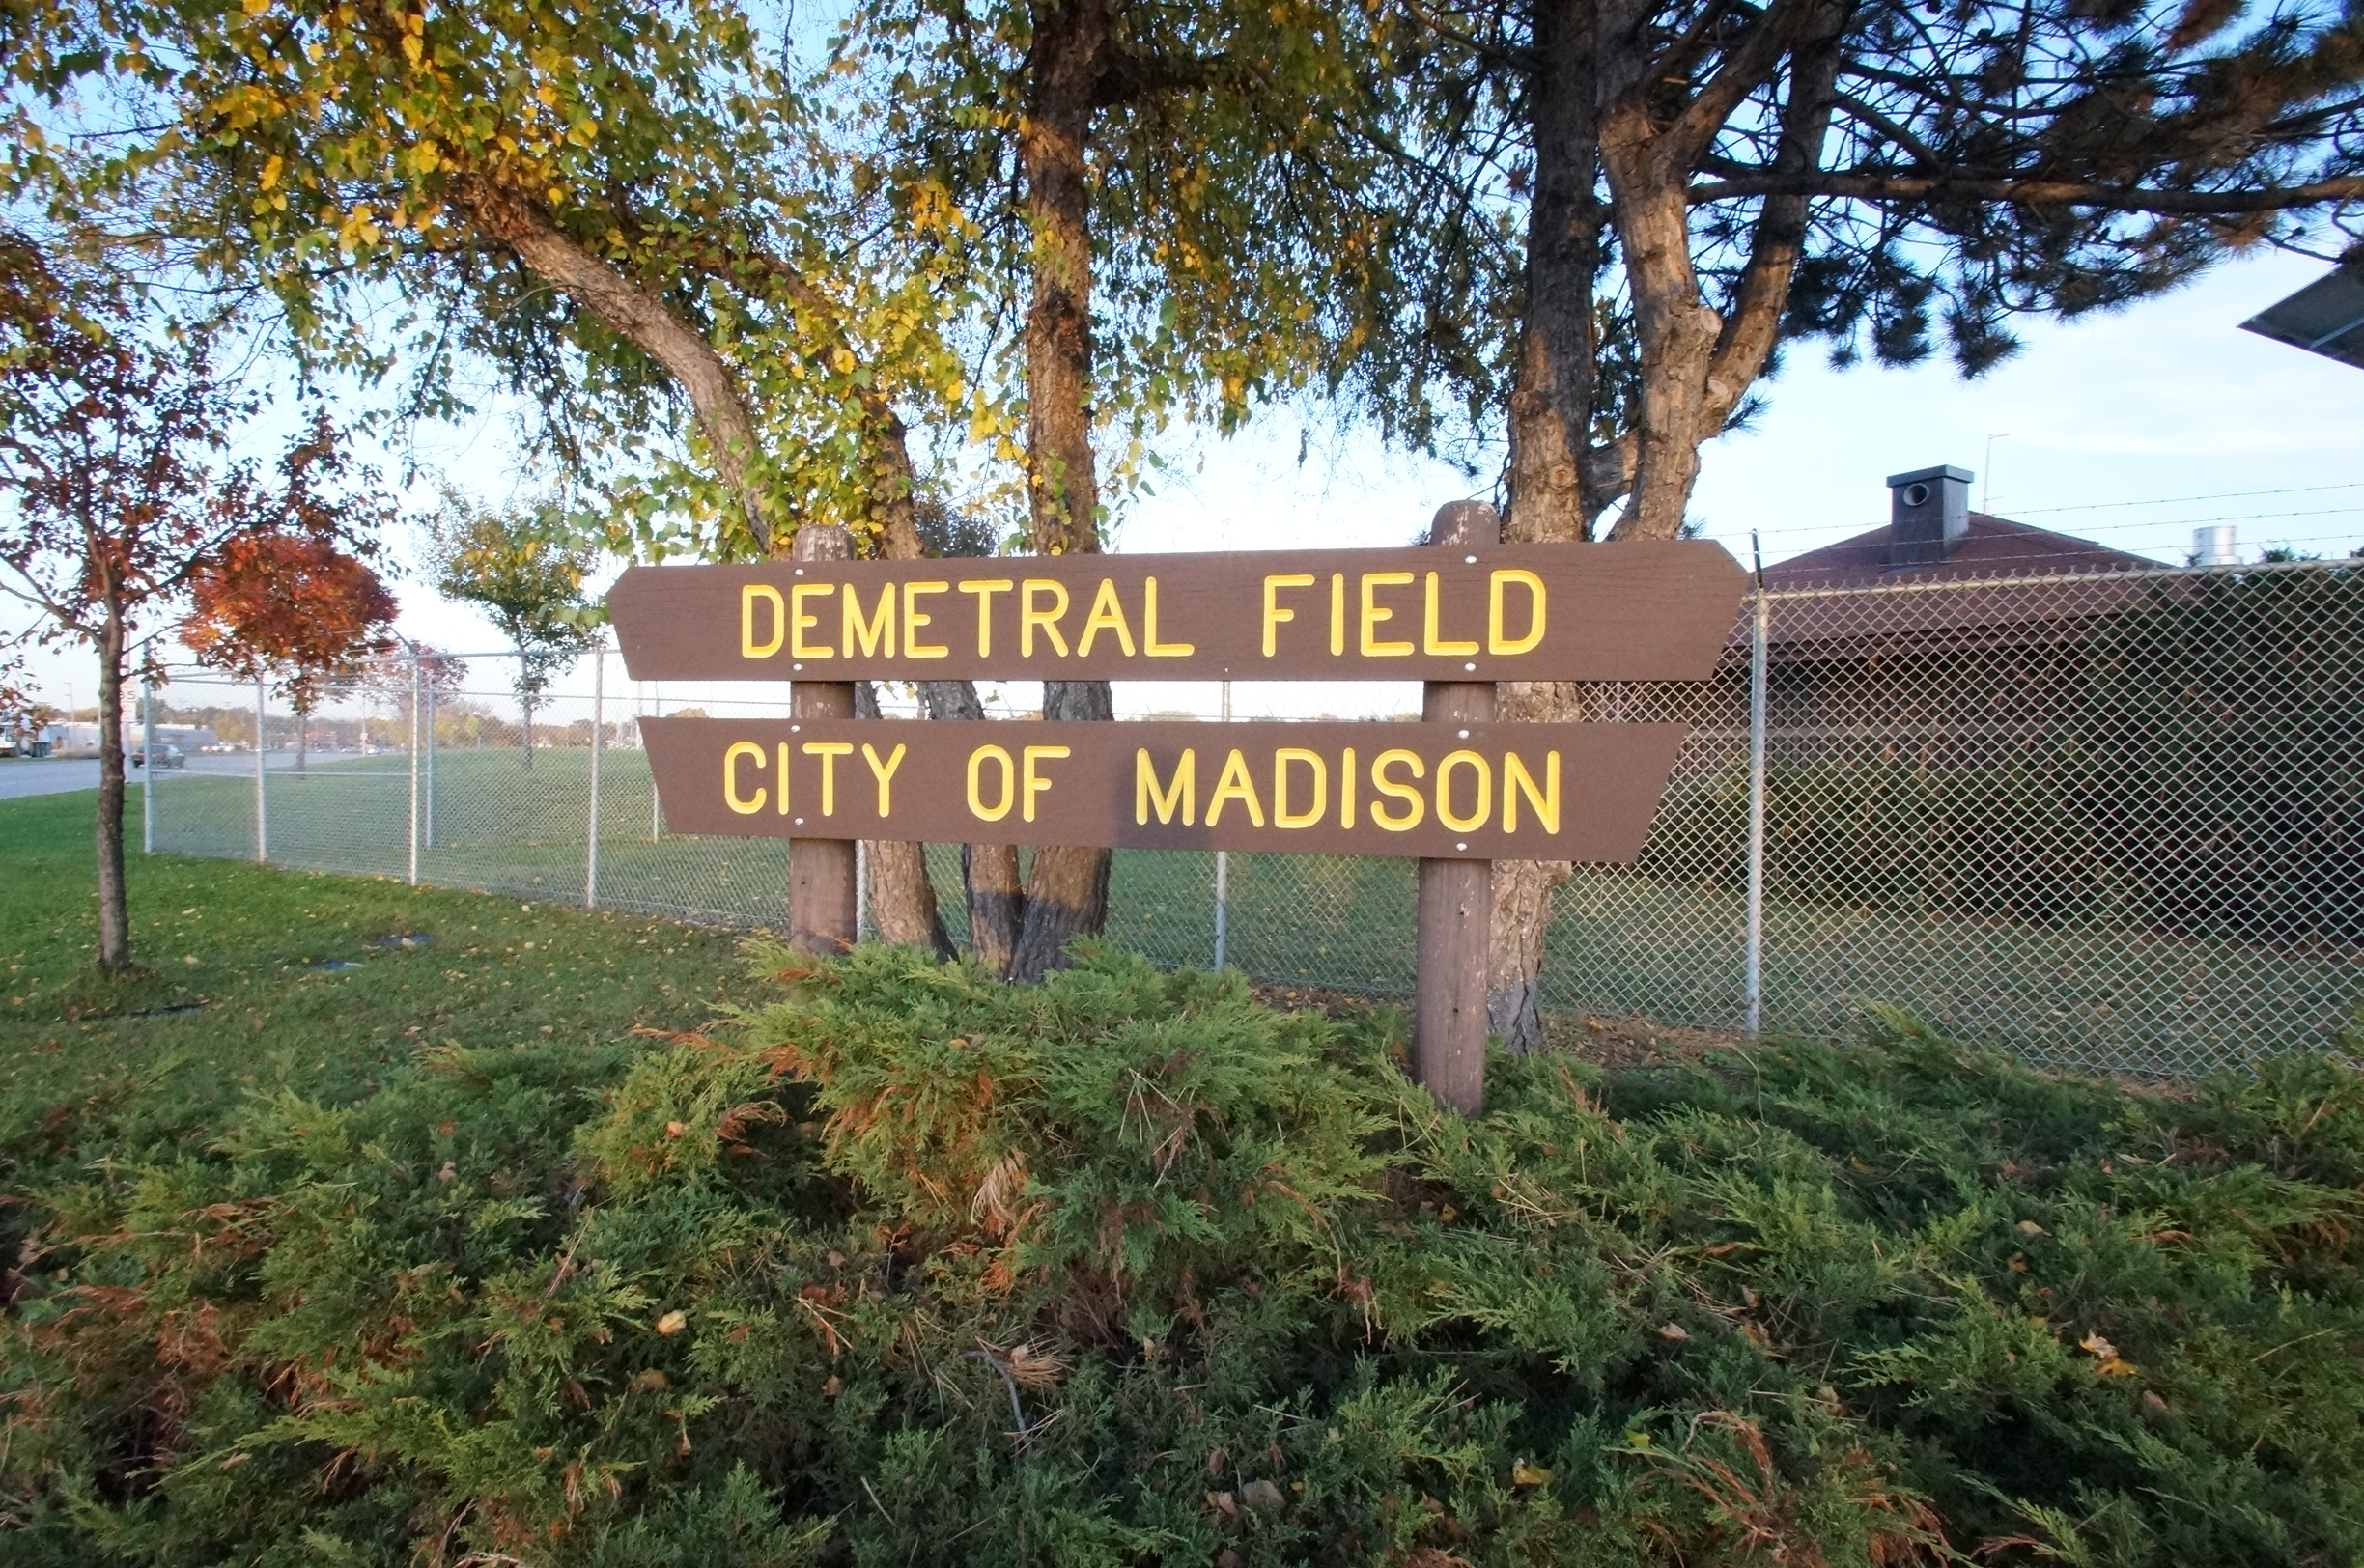 Emerson East Demetral Field